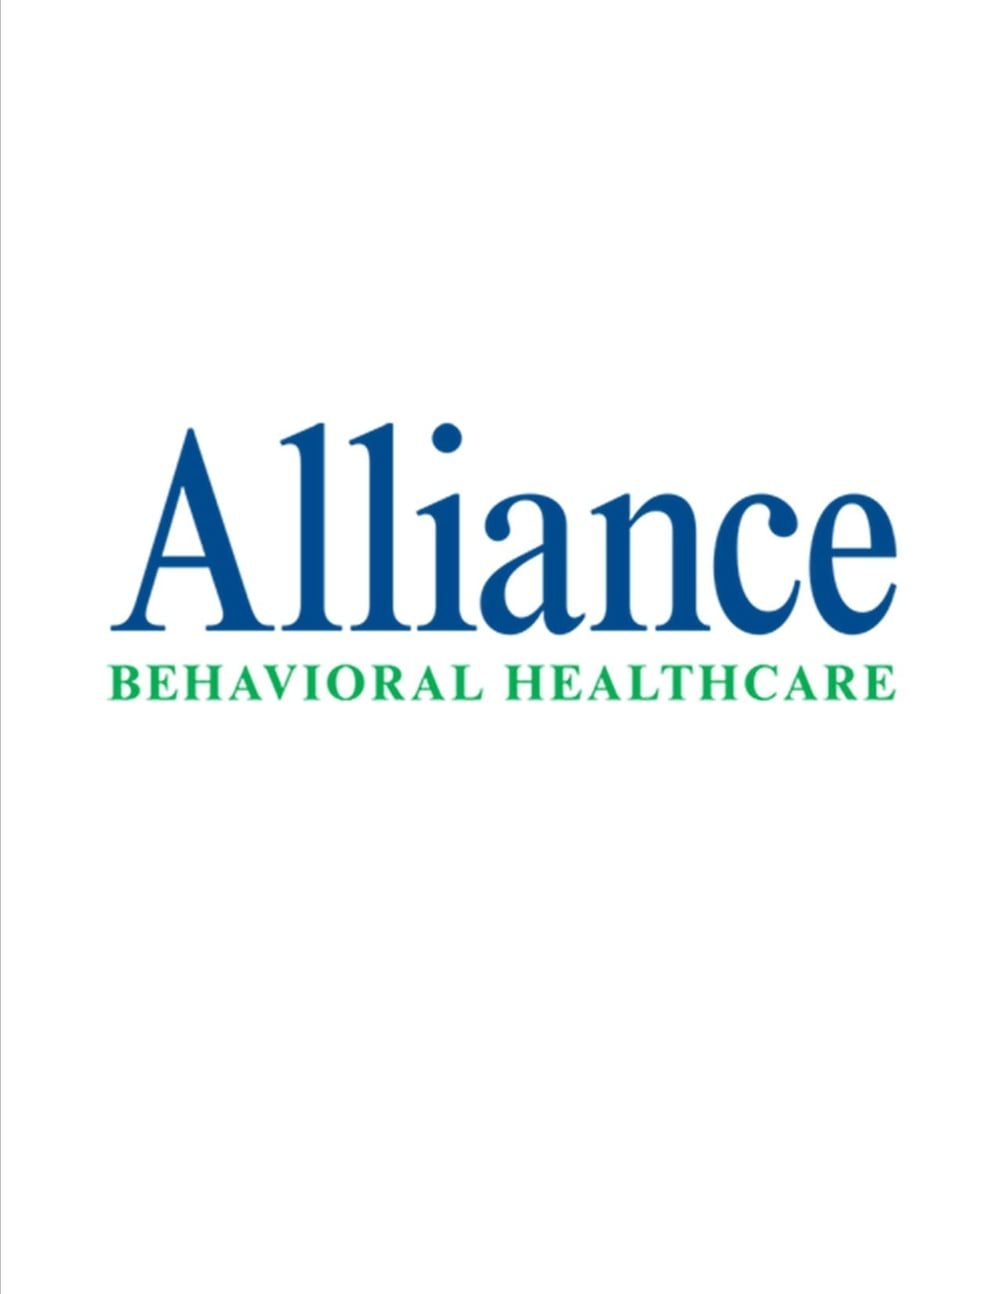 www.alliancebhc.org